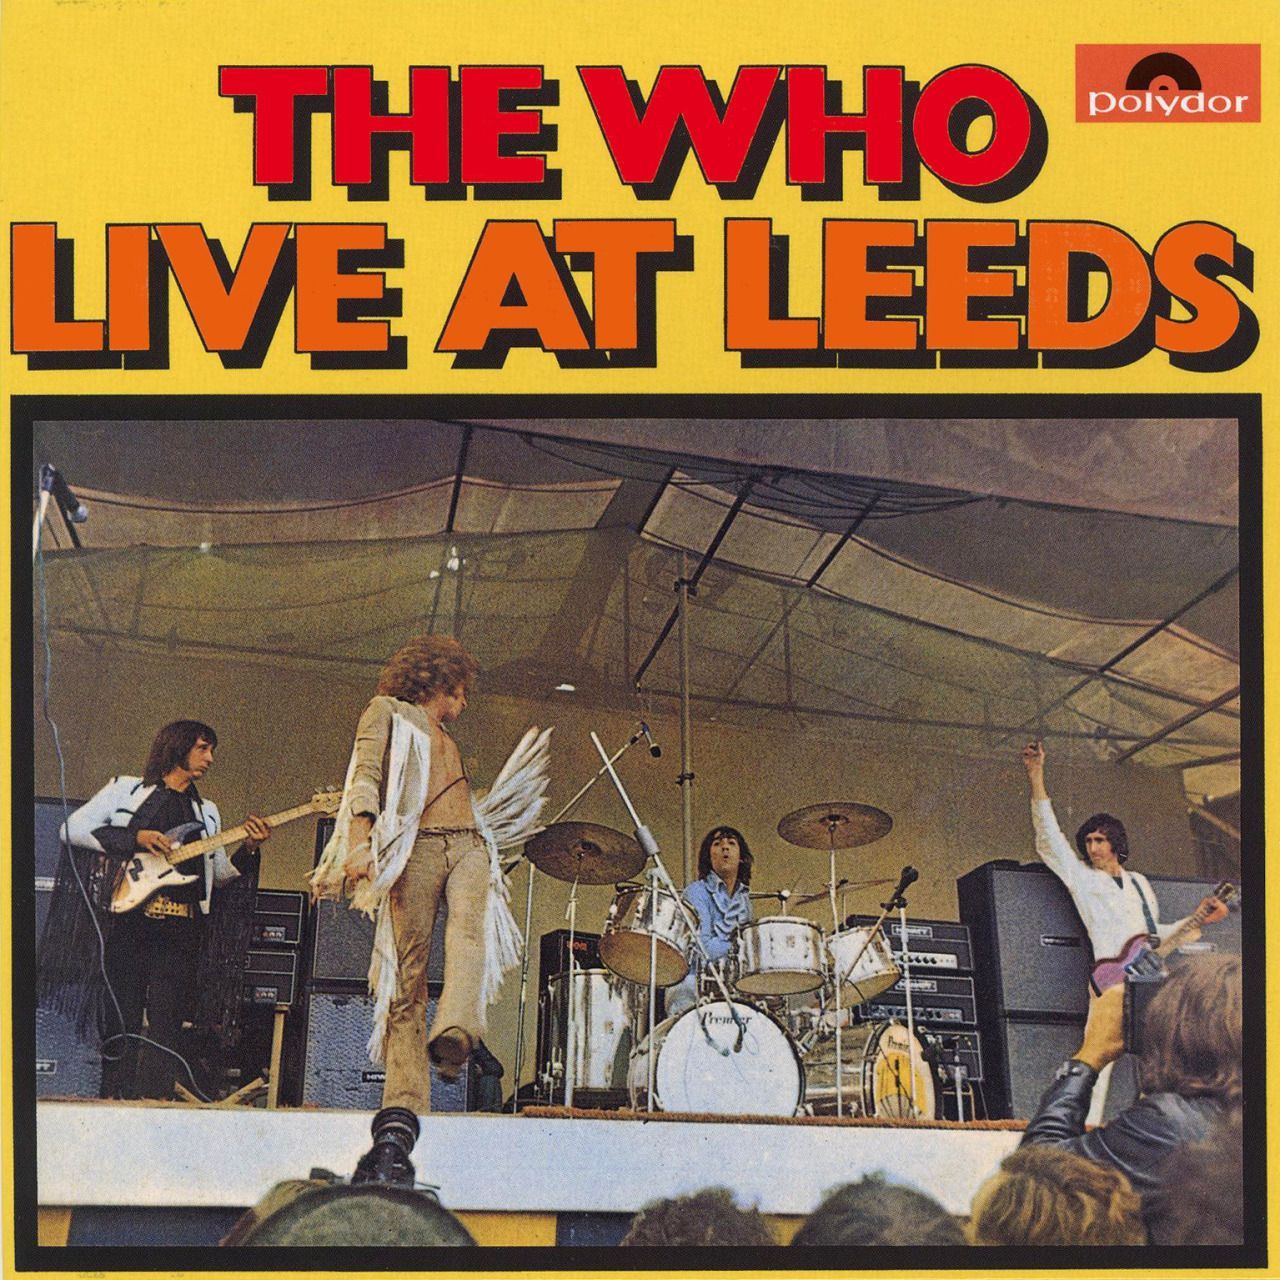 The Who - Live at Leeds (Great Live Album UK 1970 w  Different Album